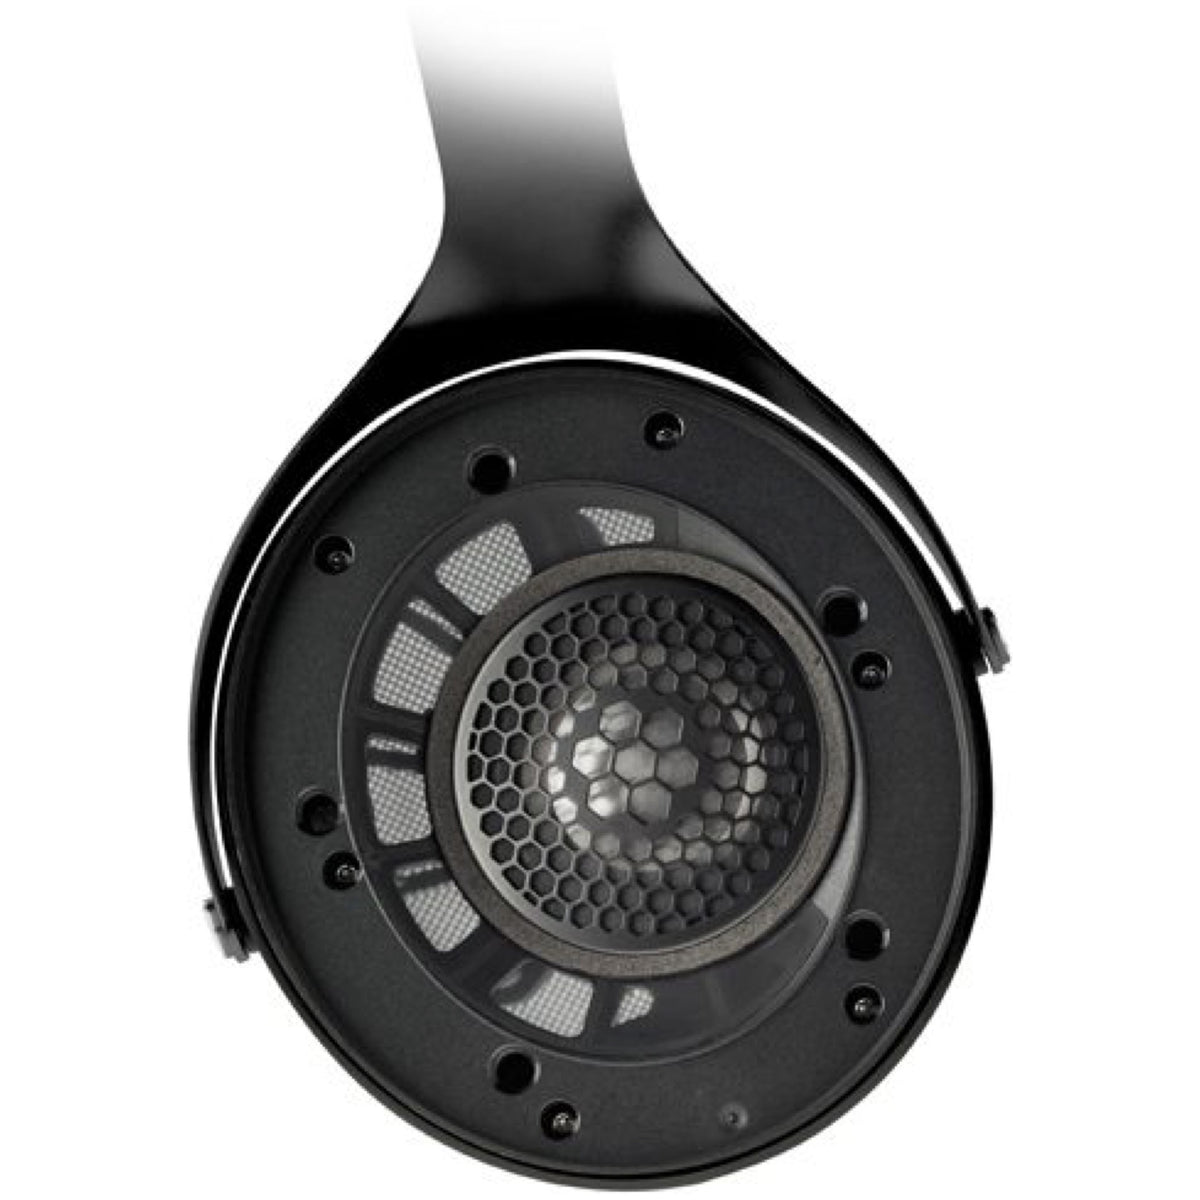 Focal Clear Professional Open-Back Studio Headphones